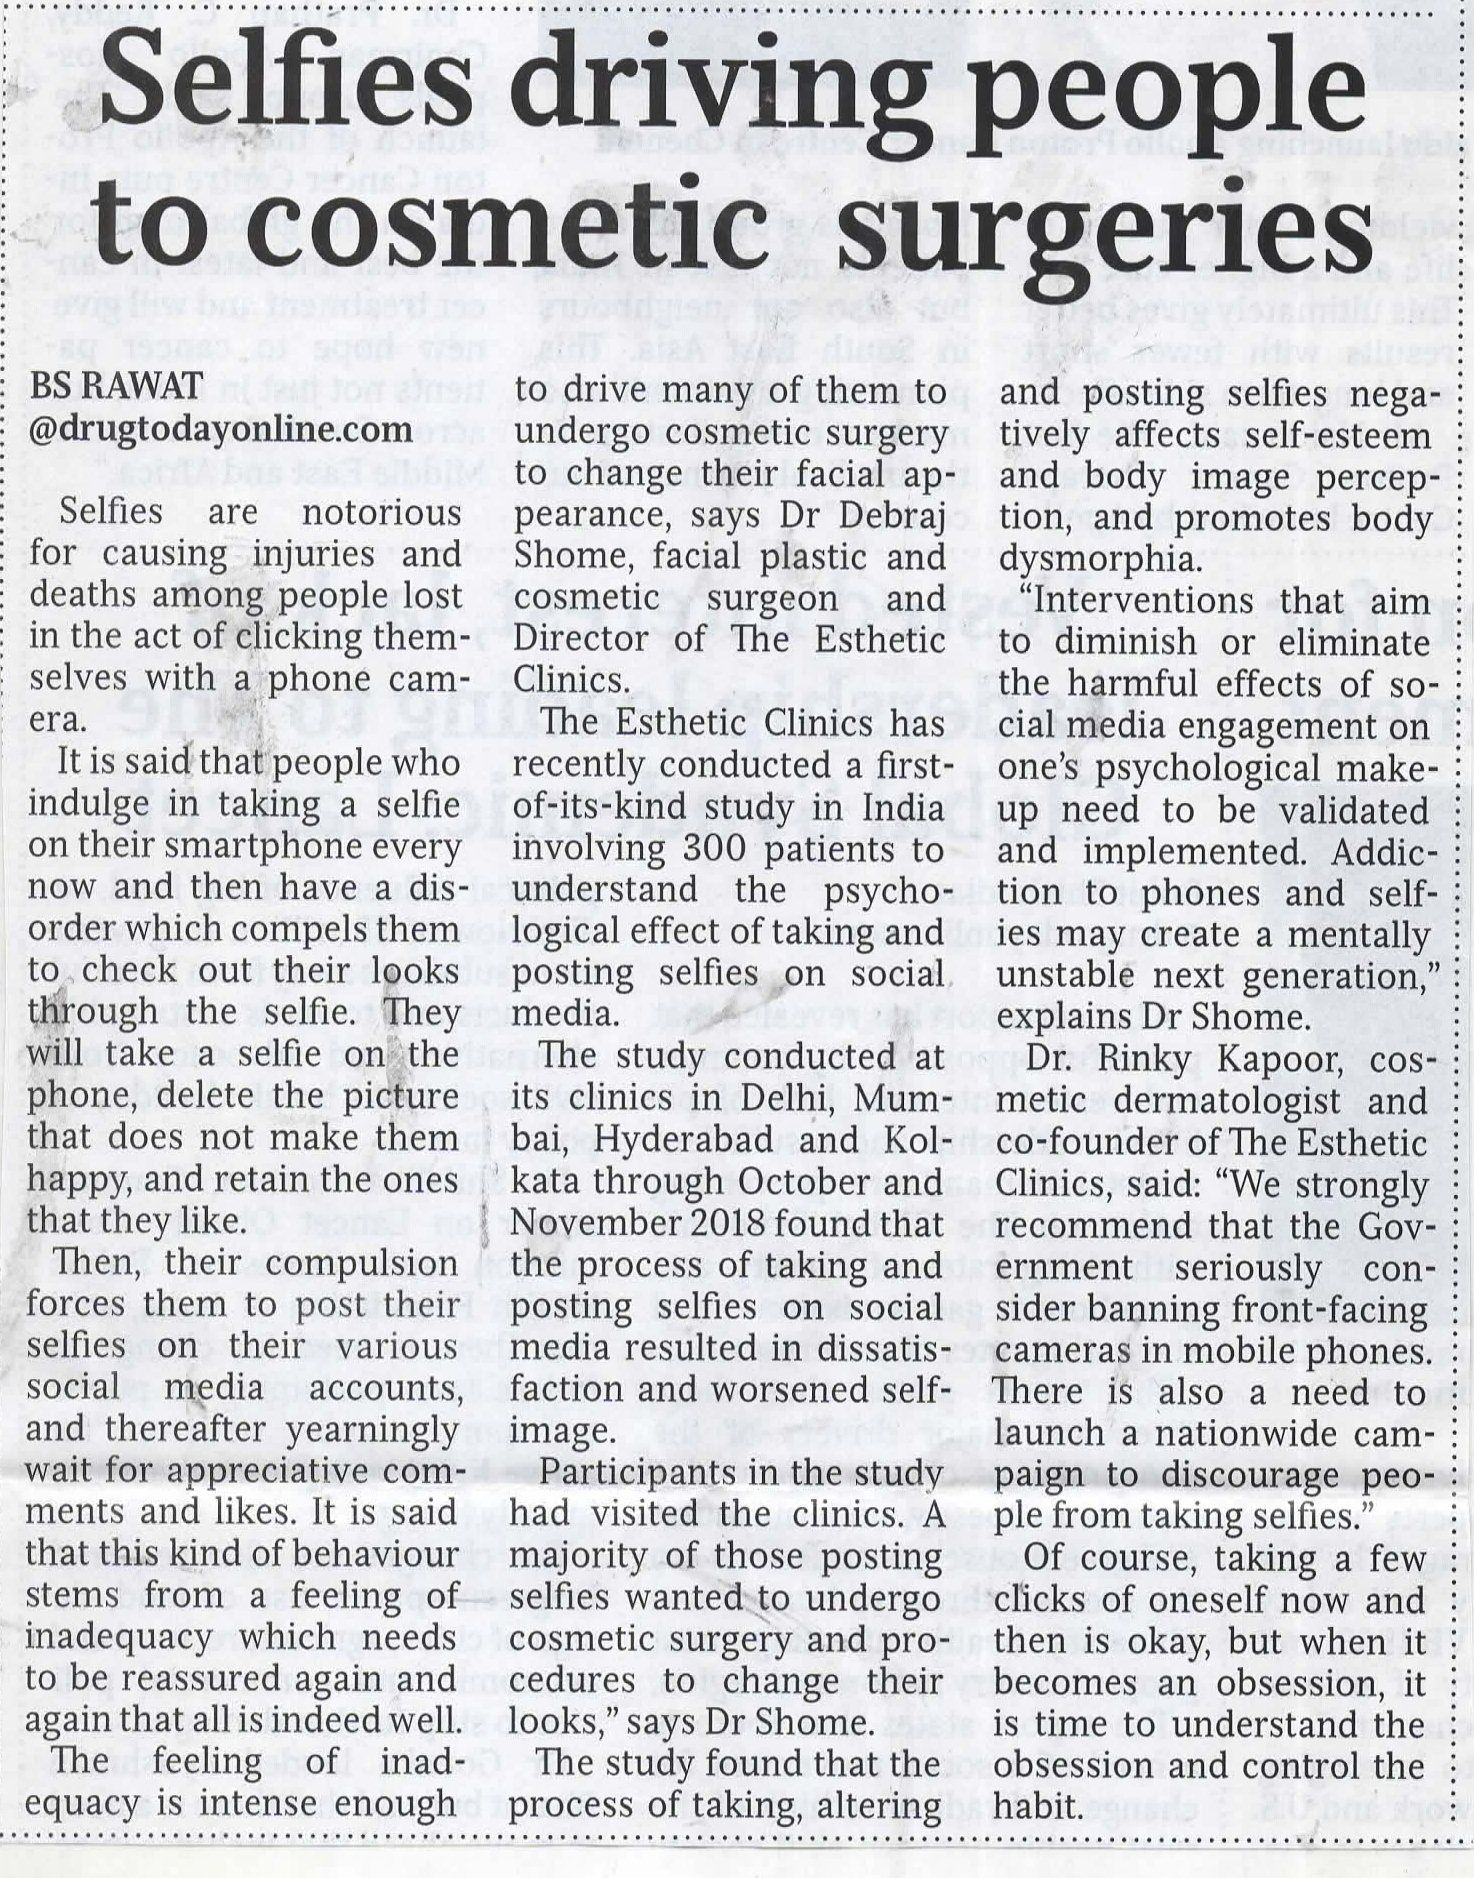 Selfies Driving People To Cosmetic Surgeries - Medical Times